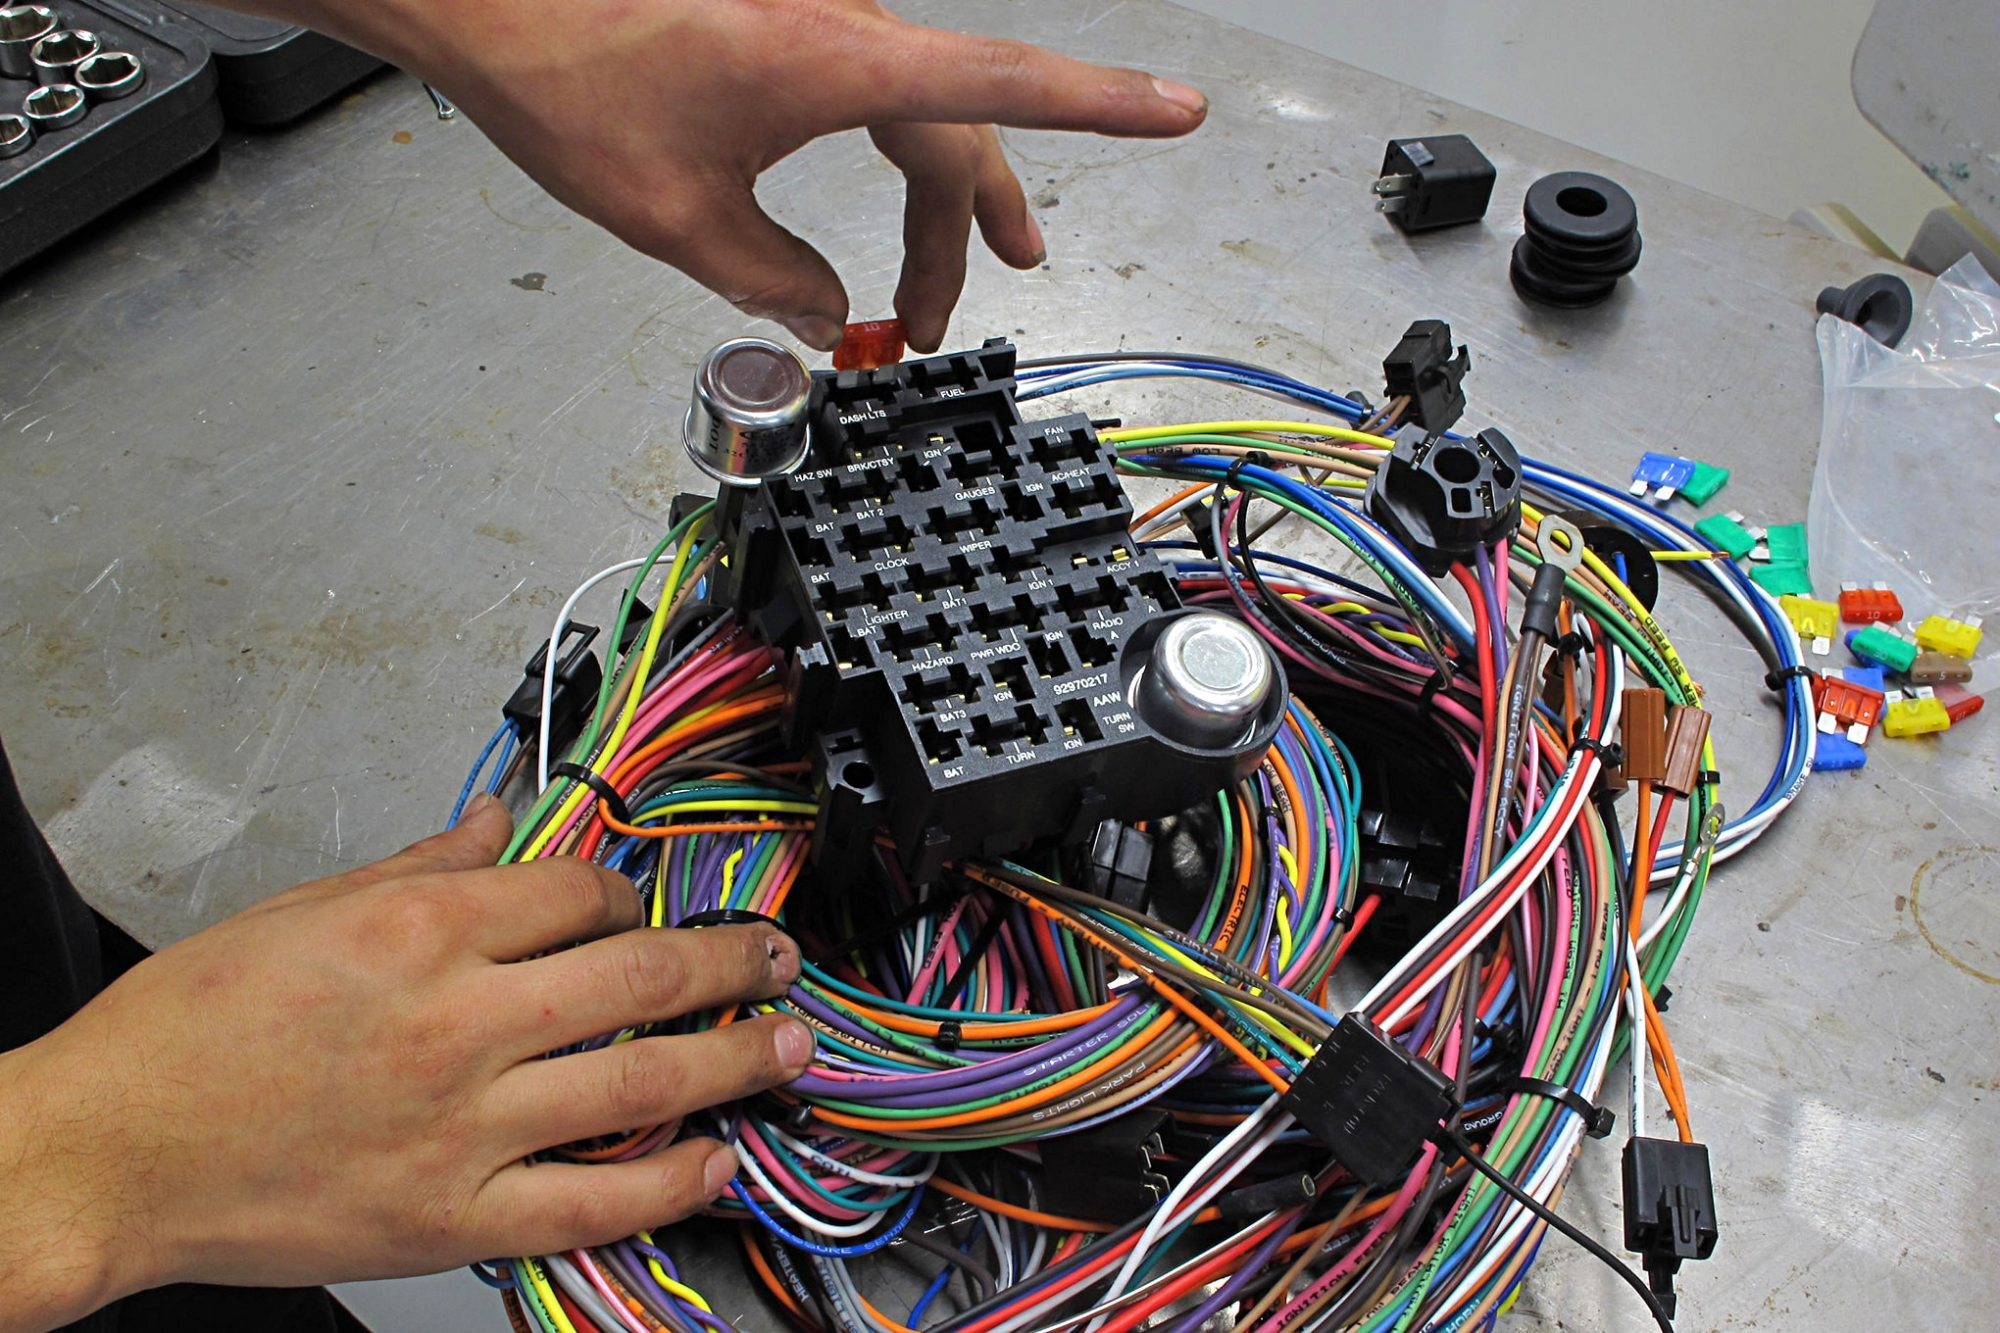 hight resolution of 003 wiring jpg the new fuse panel